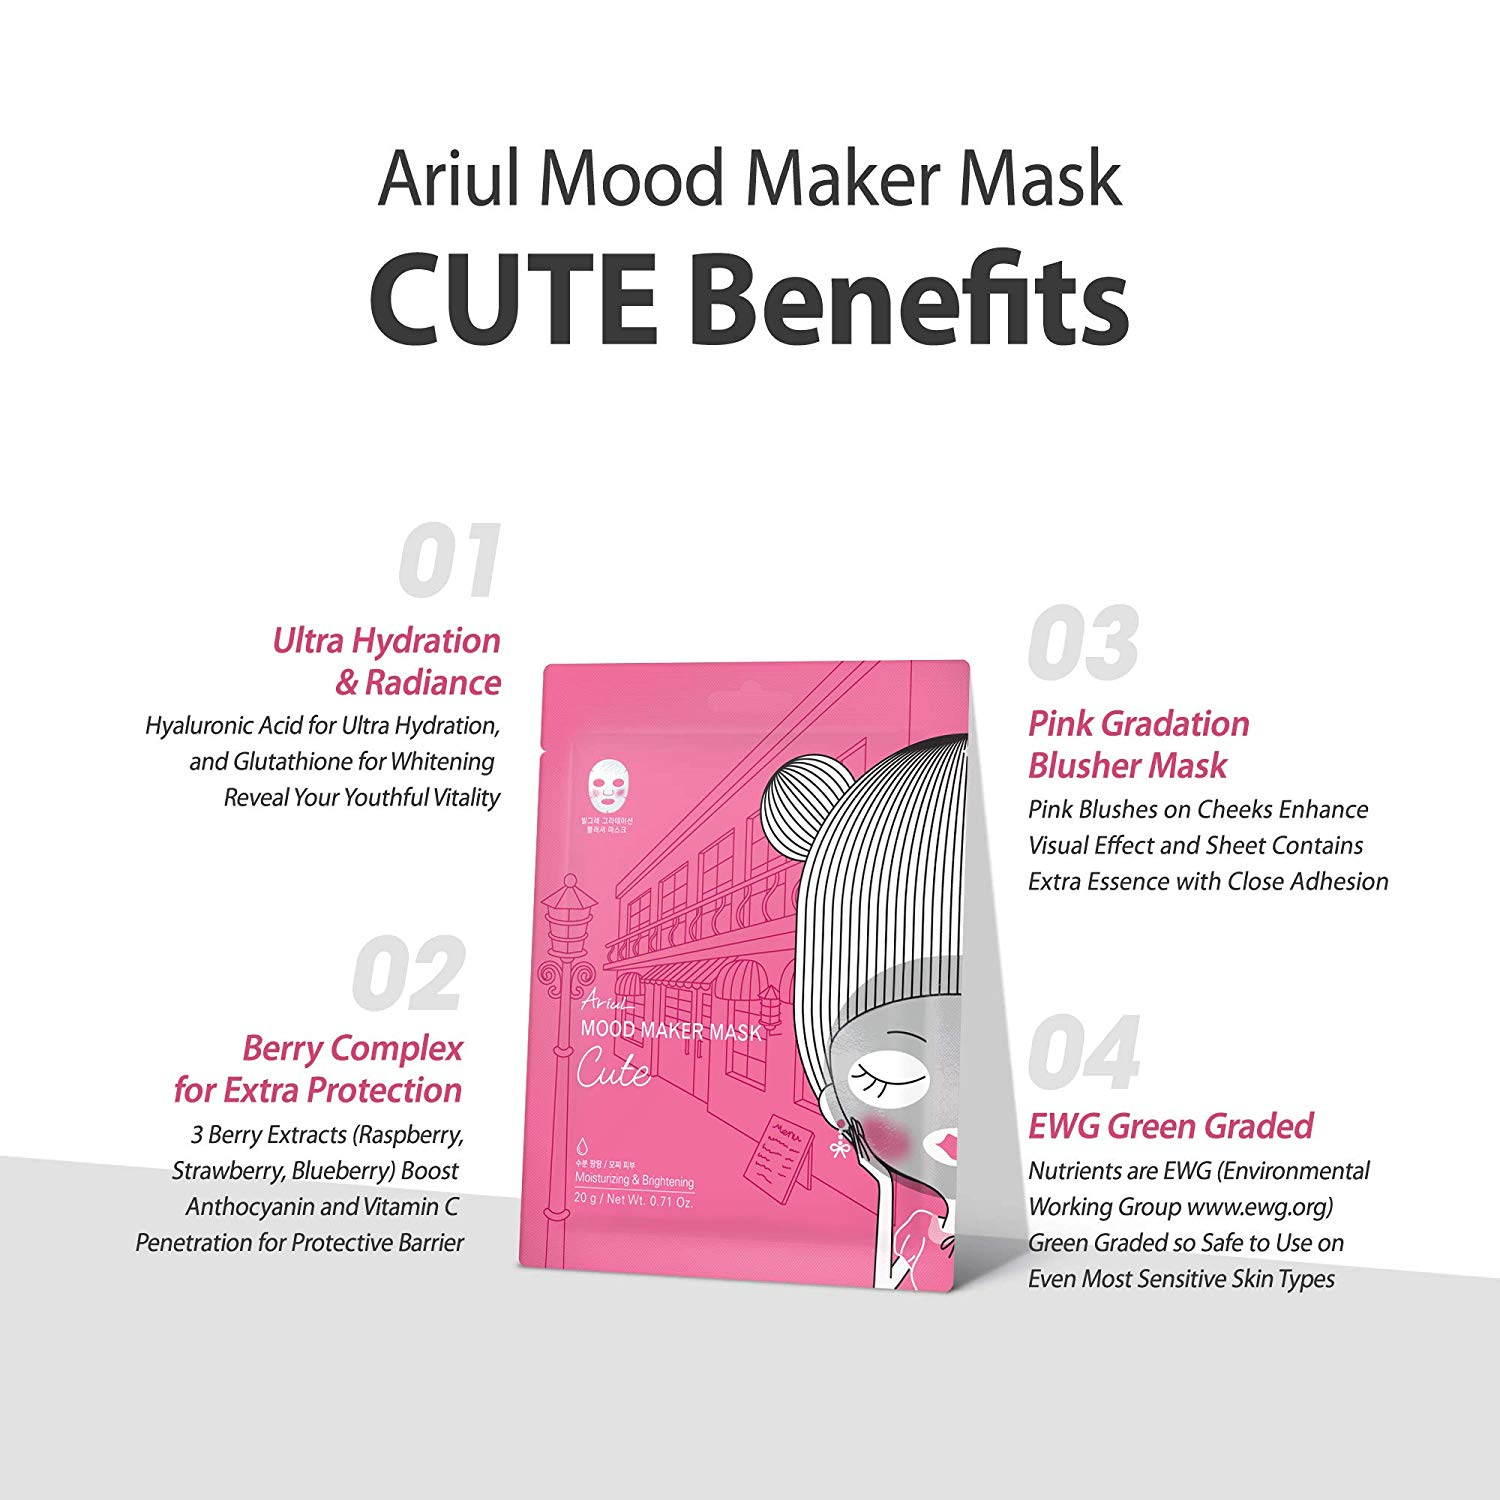 Mat Na Ariul My Mood Maker Mask Cute